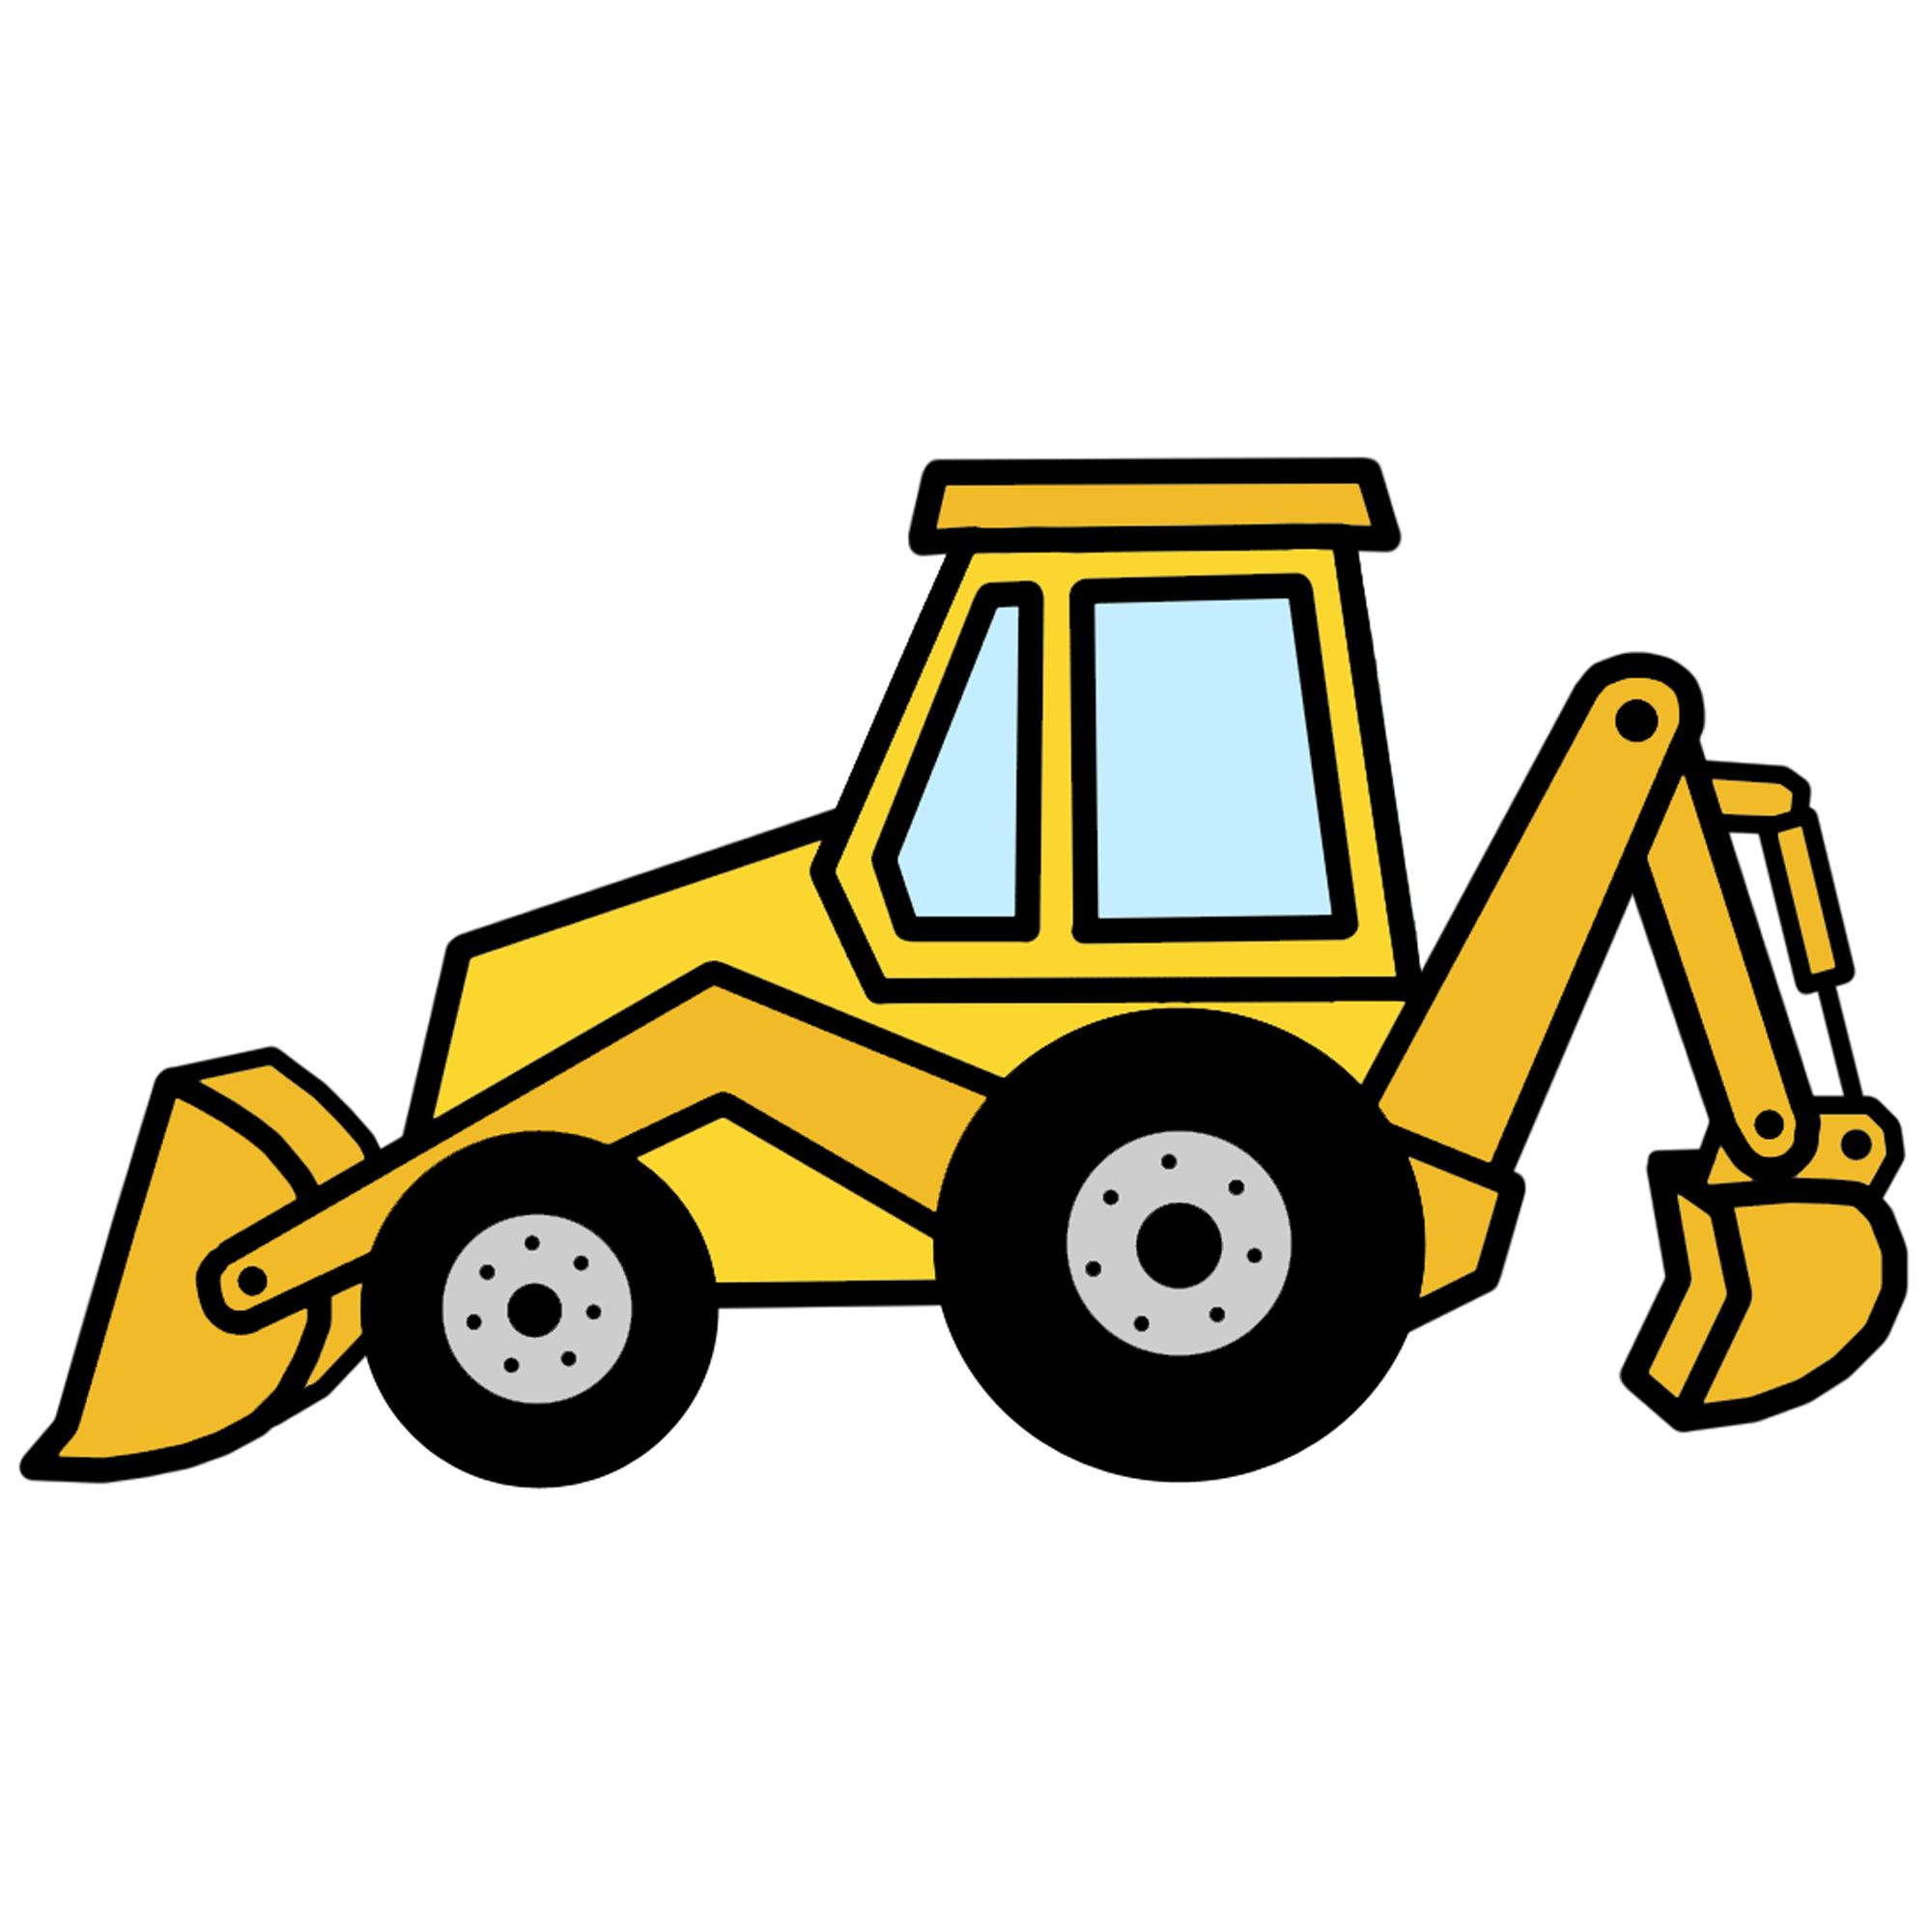 Png patterns pinterest clip. Backhoe clipart front loader